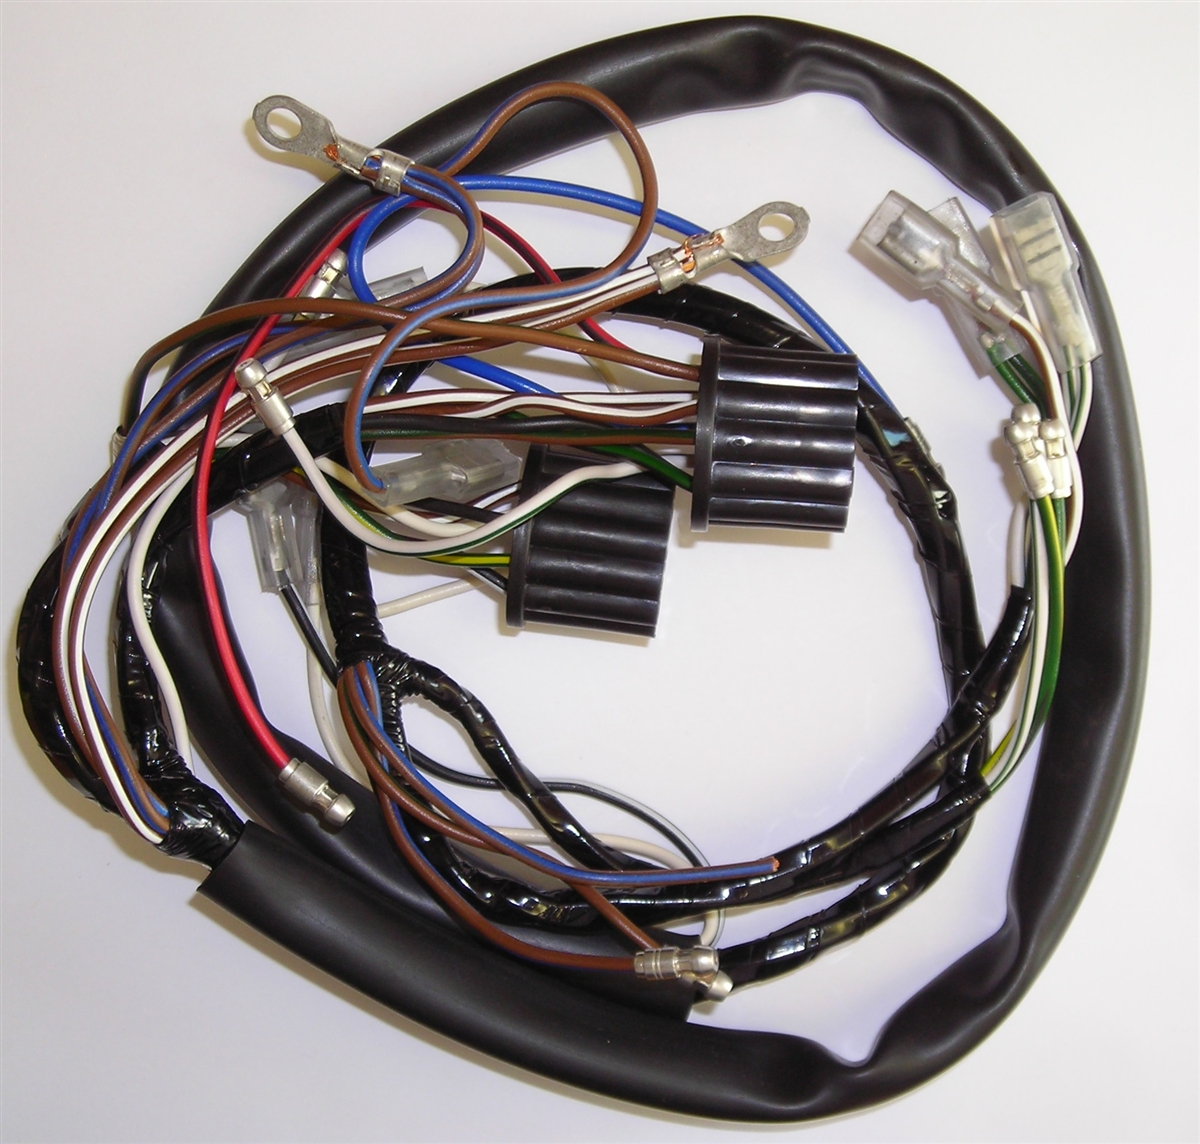 triumph motorcycle wiring harness rh britishwiring com wiring diagram for victory motorcycles wiring diagram for motorcycles